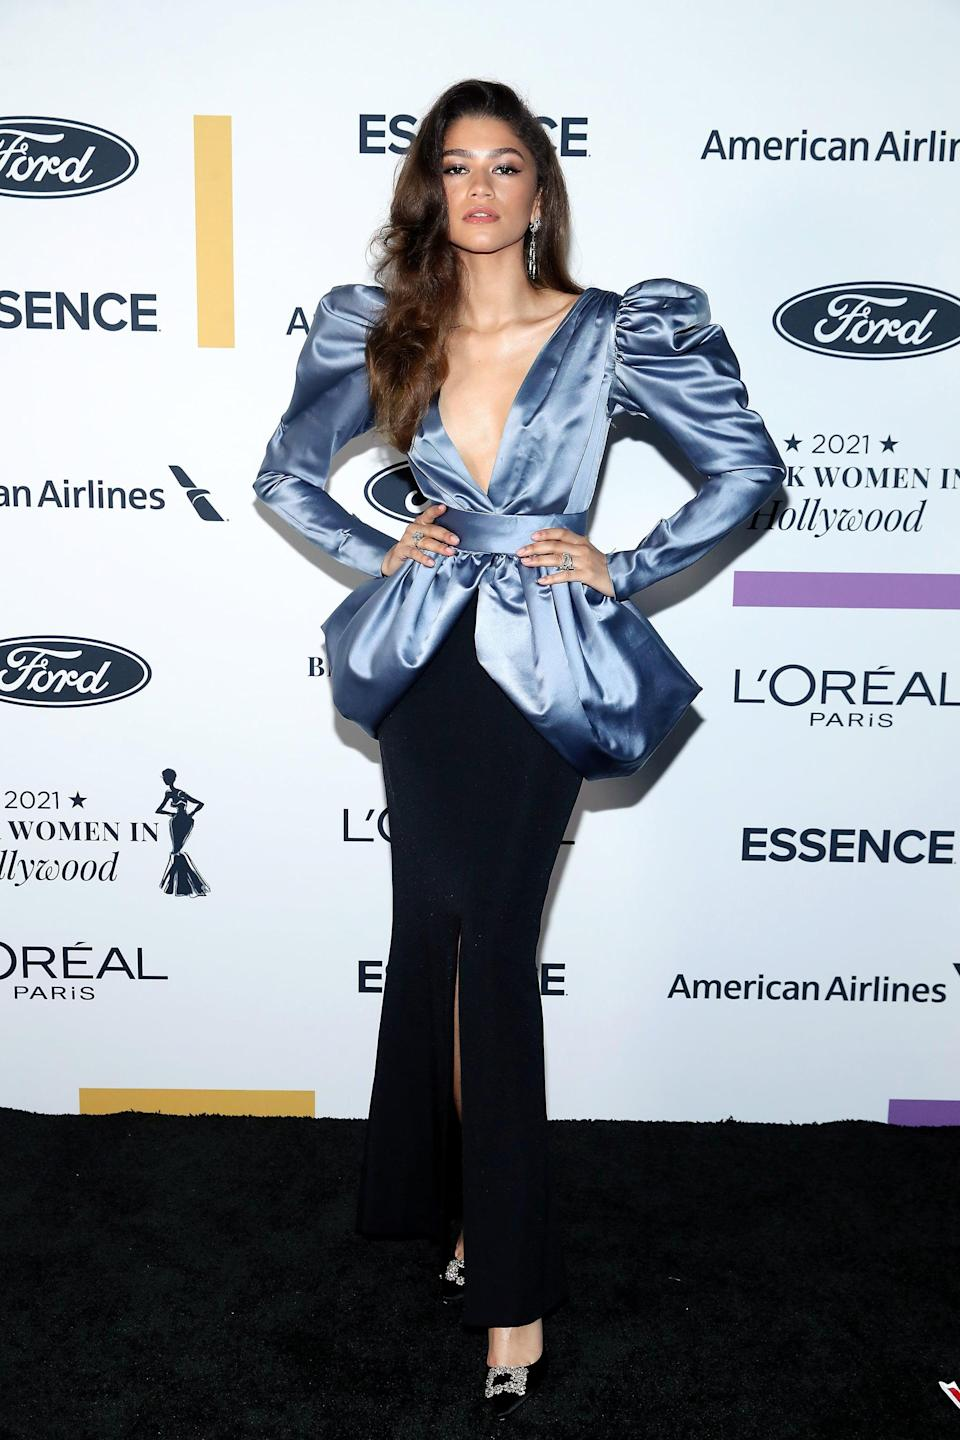 """<p>Law again dipped into his personal archives to deliver this striking YSL look from the brand's 1982 Haute Couture collection. The two-piece ensemble, which <a class=""""link rapid-noclick-resp"""" href=""""https://www.popsugar.co.uk/Zendaya"""" rel=""""nofollow noopener"""" target=""""_blank"""" data-ylk=""""slk:Zendaya"""">Zendaya</a> <a href=""""https://www.popsugar.com/fashion/zendaya-ysl-dress-essence-black-women-in-hollywood-awards-48286144"""" class=""""link rapid-noclick-resp"""" rel=""""nofollow noopener"""" target=""""_blank"""" data-ylk=""""slk:wore to Essence's Black Women in Hollywood Awards"""">wore to <strong>Essence</strong>'s Black Women in Hollywood Awards</a> in 2021, was once owned by Eunice Walker Johnson, the trailblazing businesswoman who famously founded the Ebony Fashion Fair in 1958. In fact, Eunice <a href=""""https://www.instagram.com/p/CN_CkCrDXrV/"""" class=""""link rapid-noclick-resp"""" rel=""""nofollow noopener"""" target=""""_blank"""" data-ylk=""""slk:wore the exact outfit on the cover"""">wore the exact outfit on the cover</a> of <strong>Ebony</strong>'s 25th anniversary issue.</p>"""